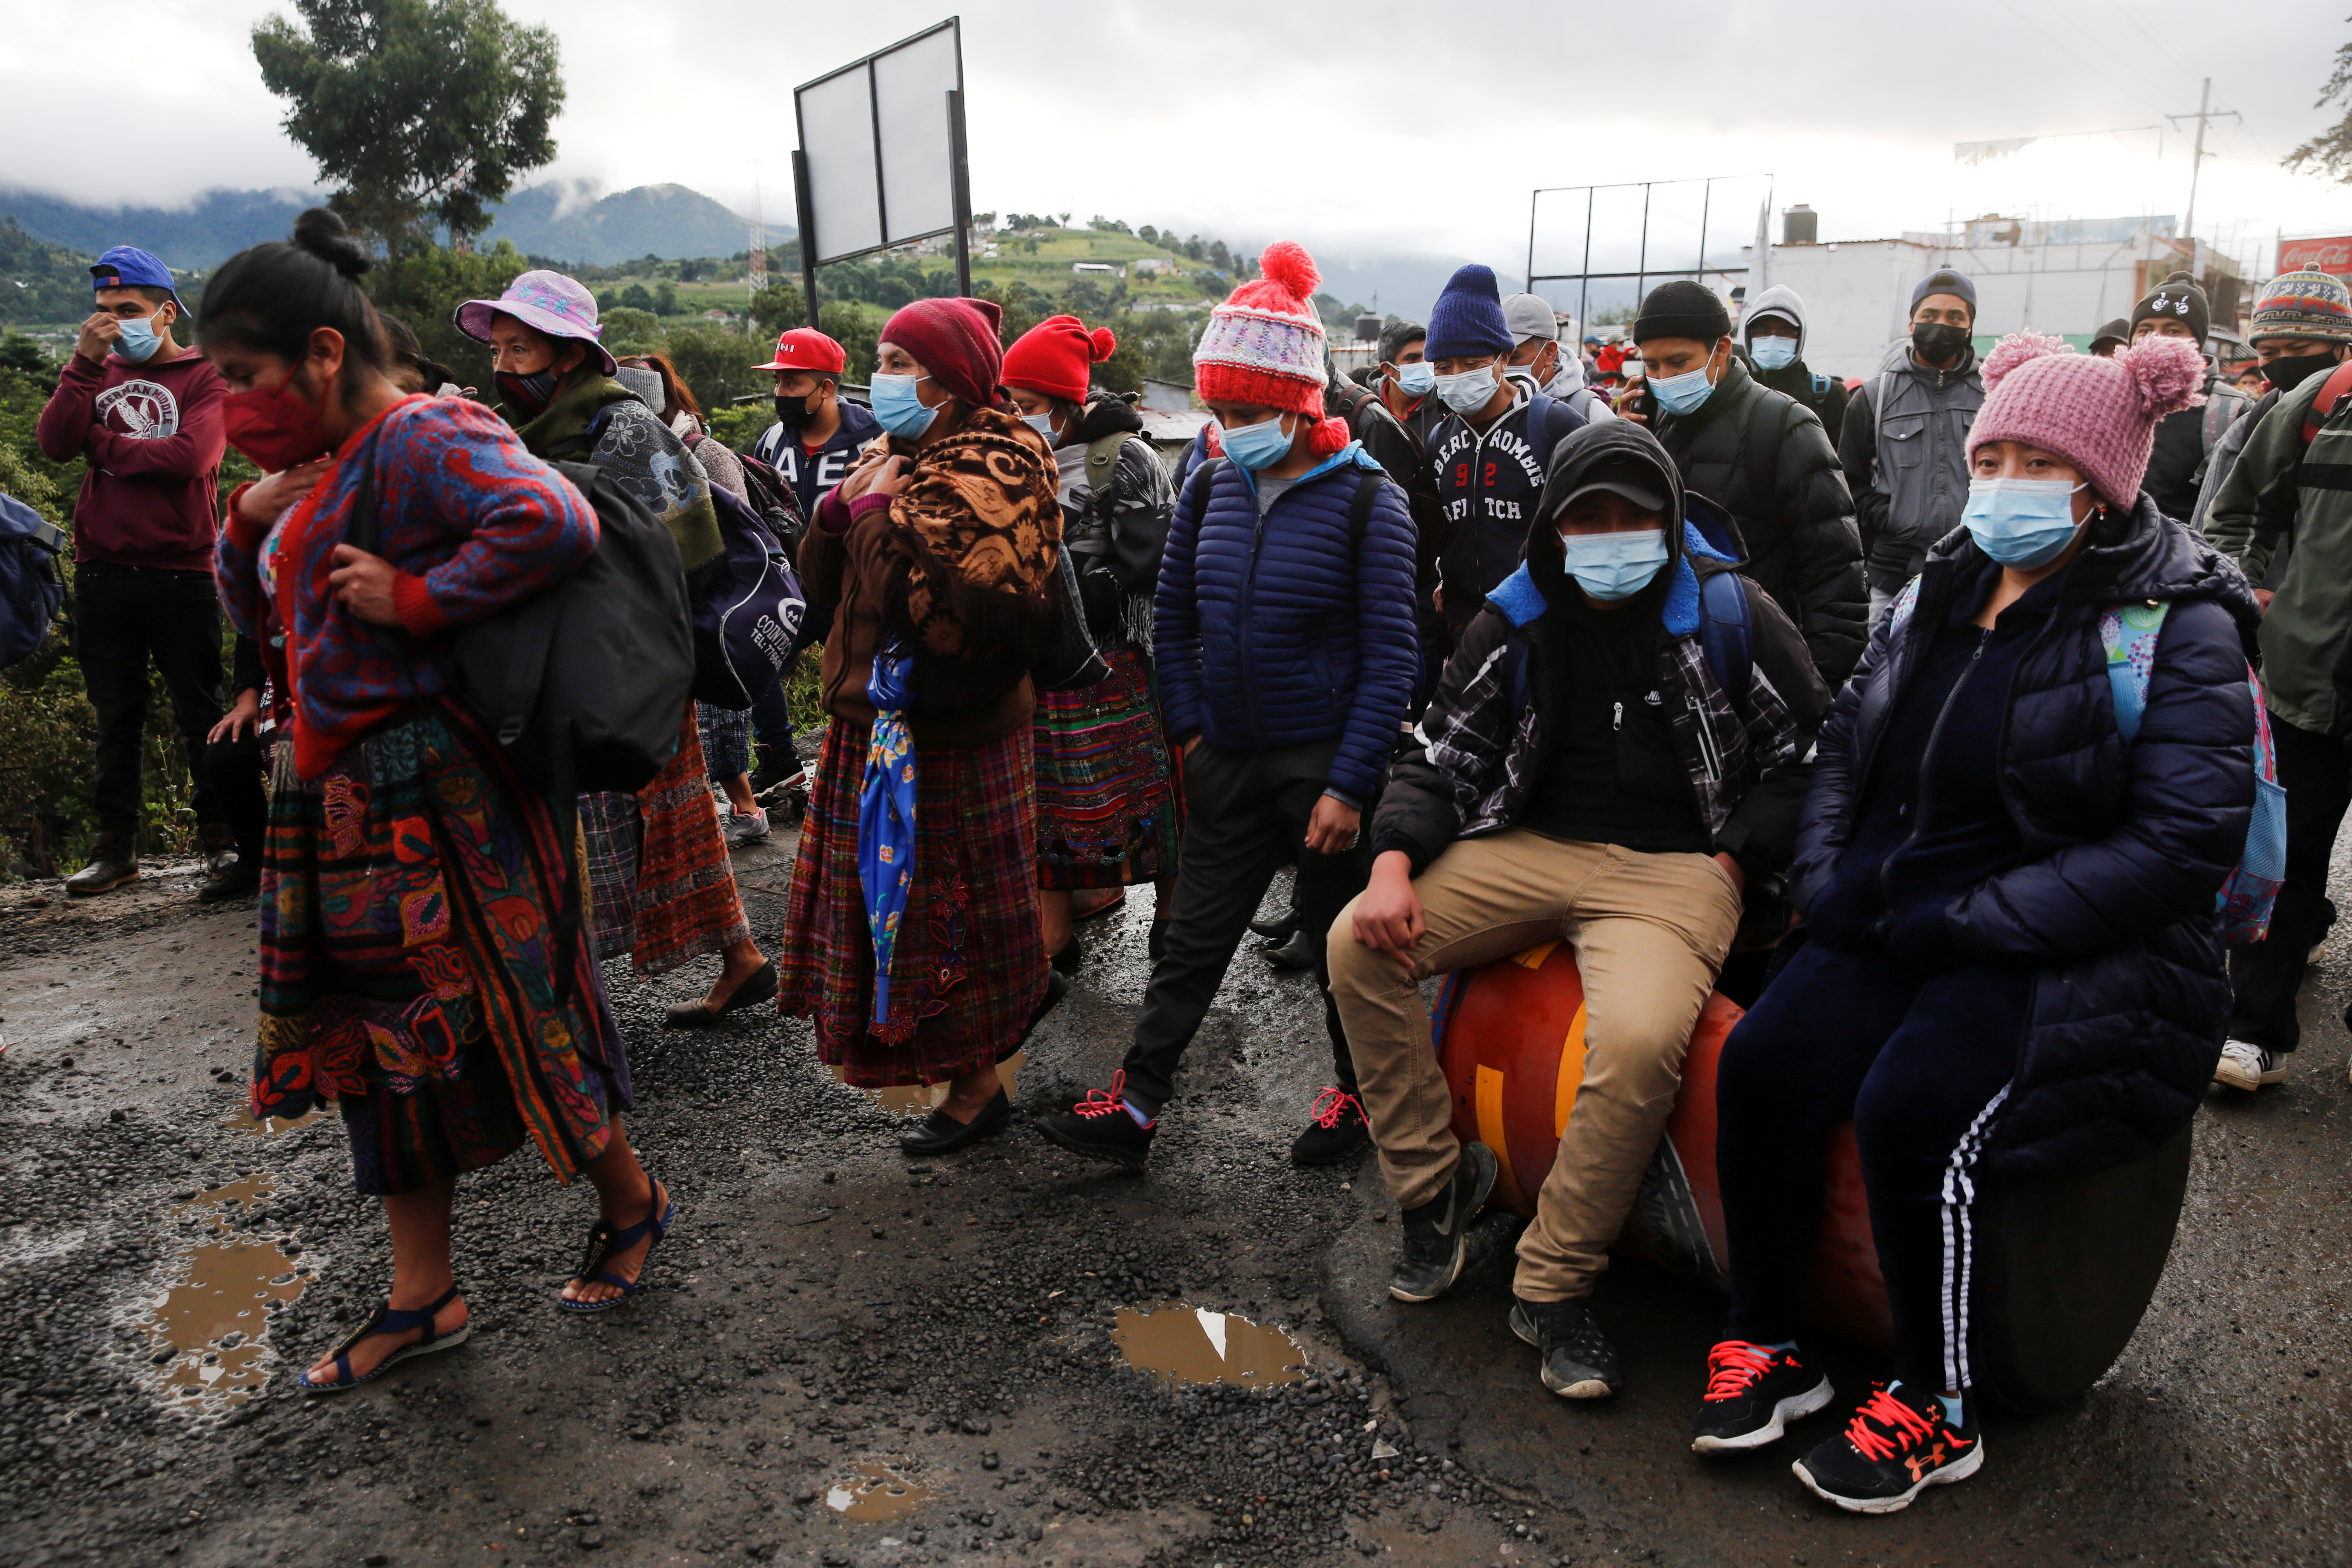 Mayan indigenous people block a road as they take part in a protest demanding the resignation of Guatemalan President Alejandro Giammattei and Attorney General Maria Porras, in San Cristobal Totonicapan, Guatemala July 29, 2021. REUTERS/Luis Echeverria